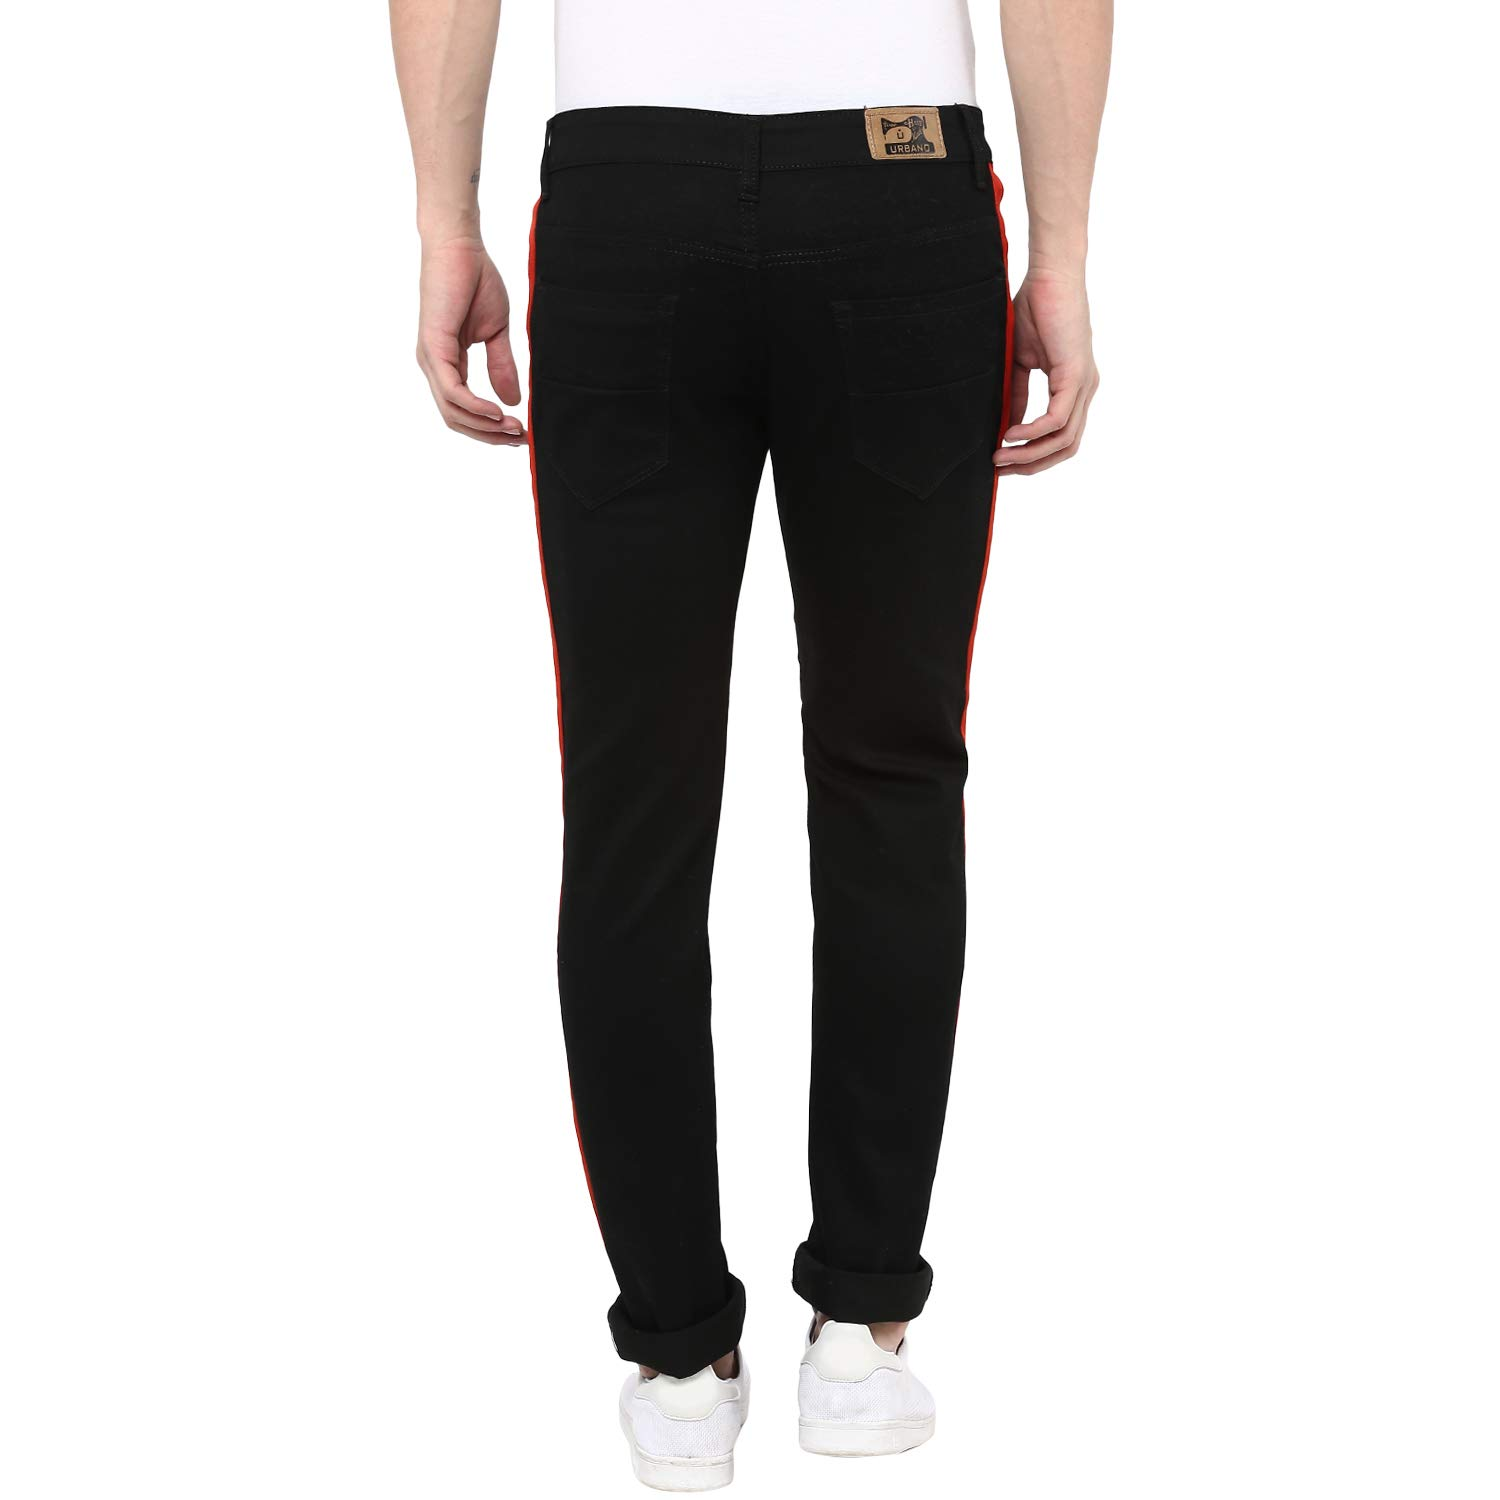 550124d5f0 Urbano Fashion Men s Black Side Striped Slim Fit Jeans Stretchable  (hpsstripered-black-34-fba)  Amazon.in  Clothing   Accessories